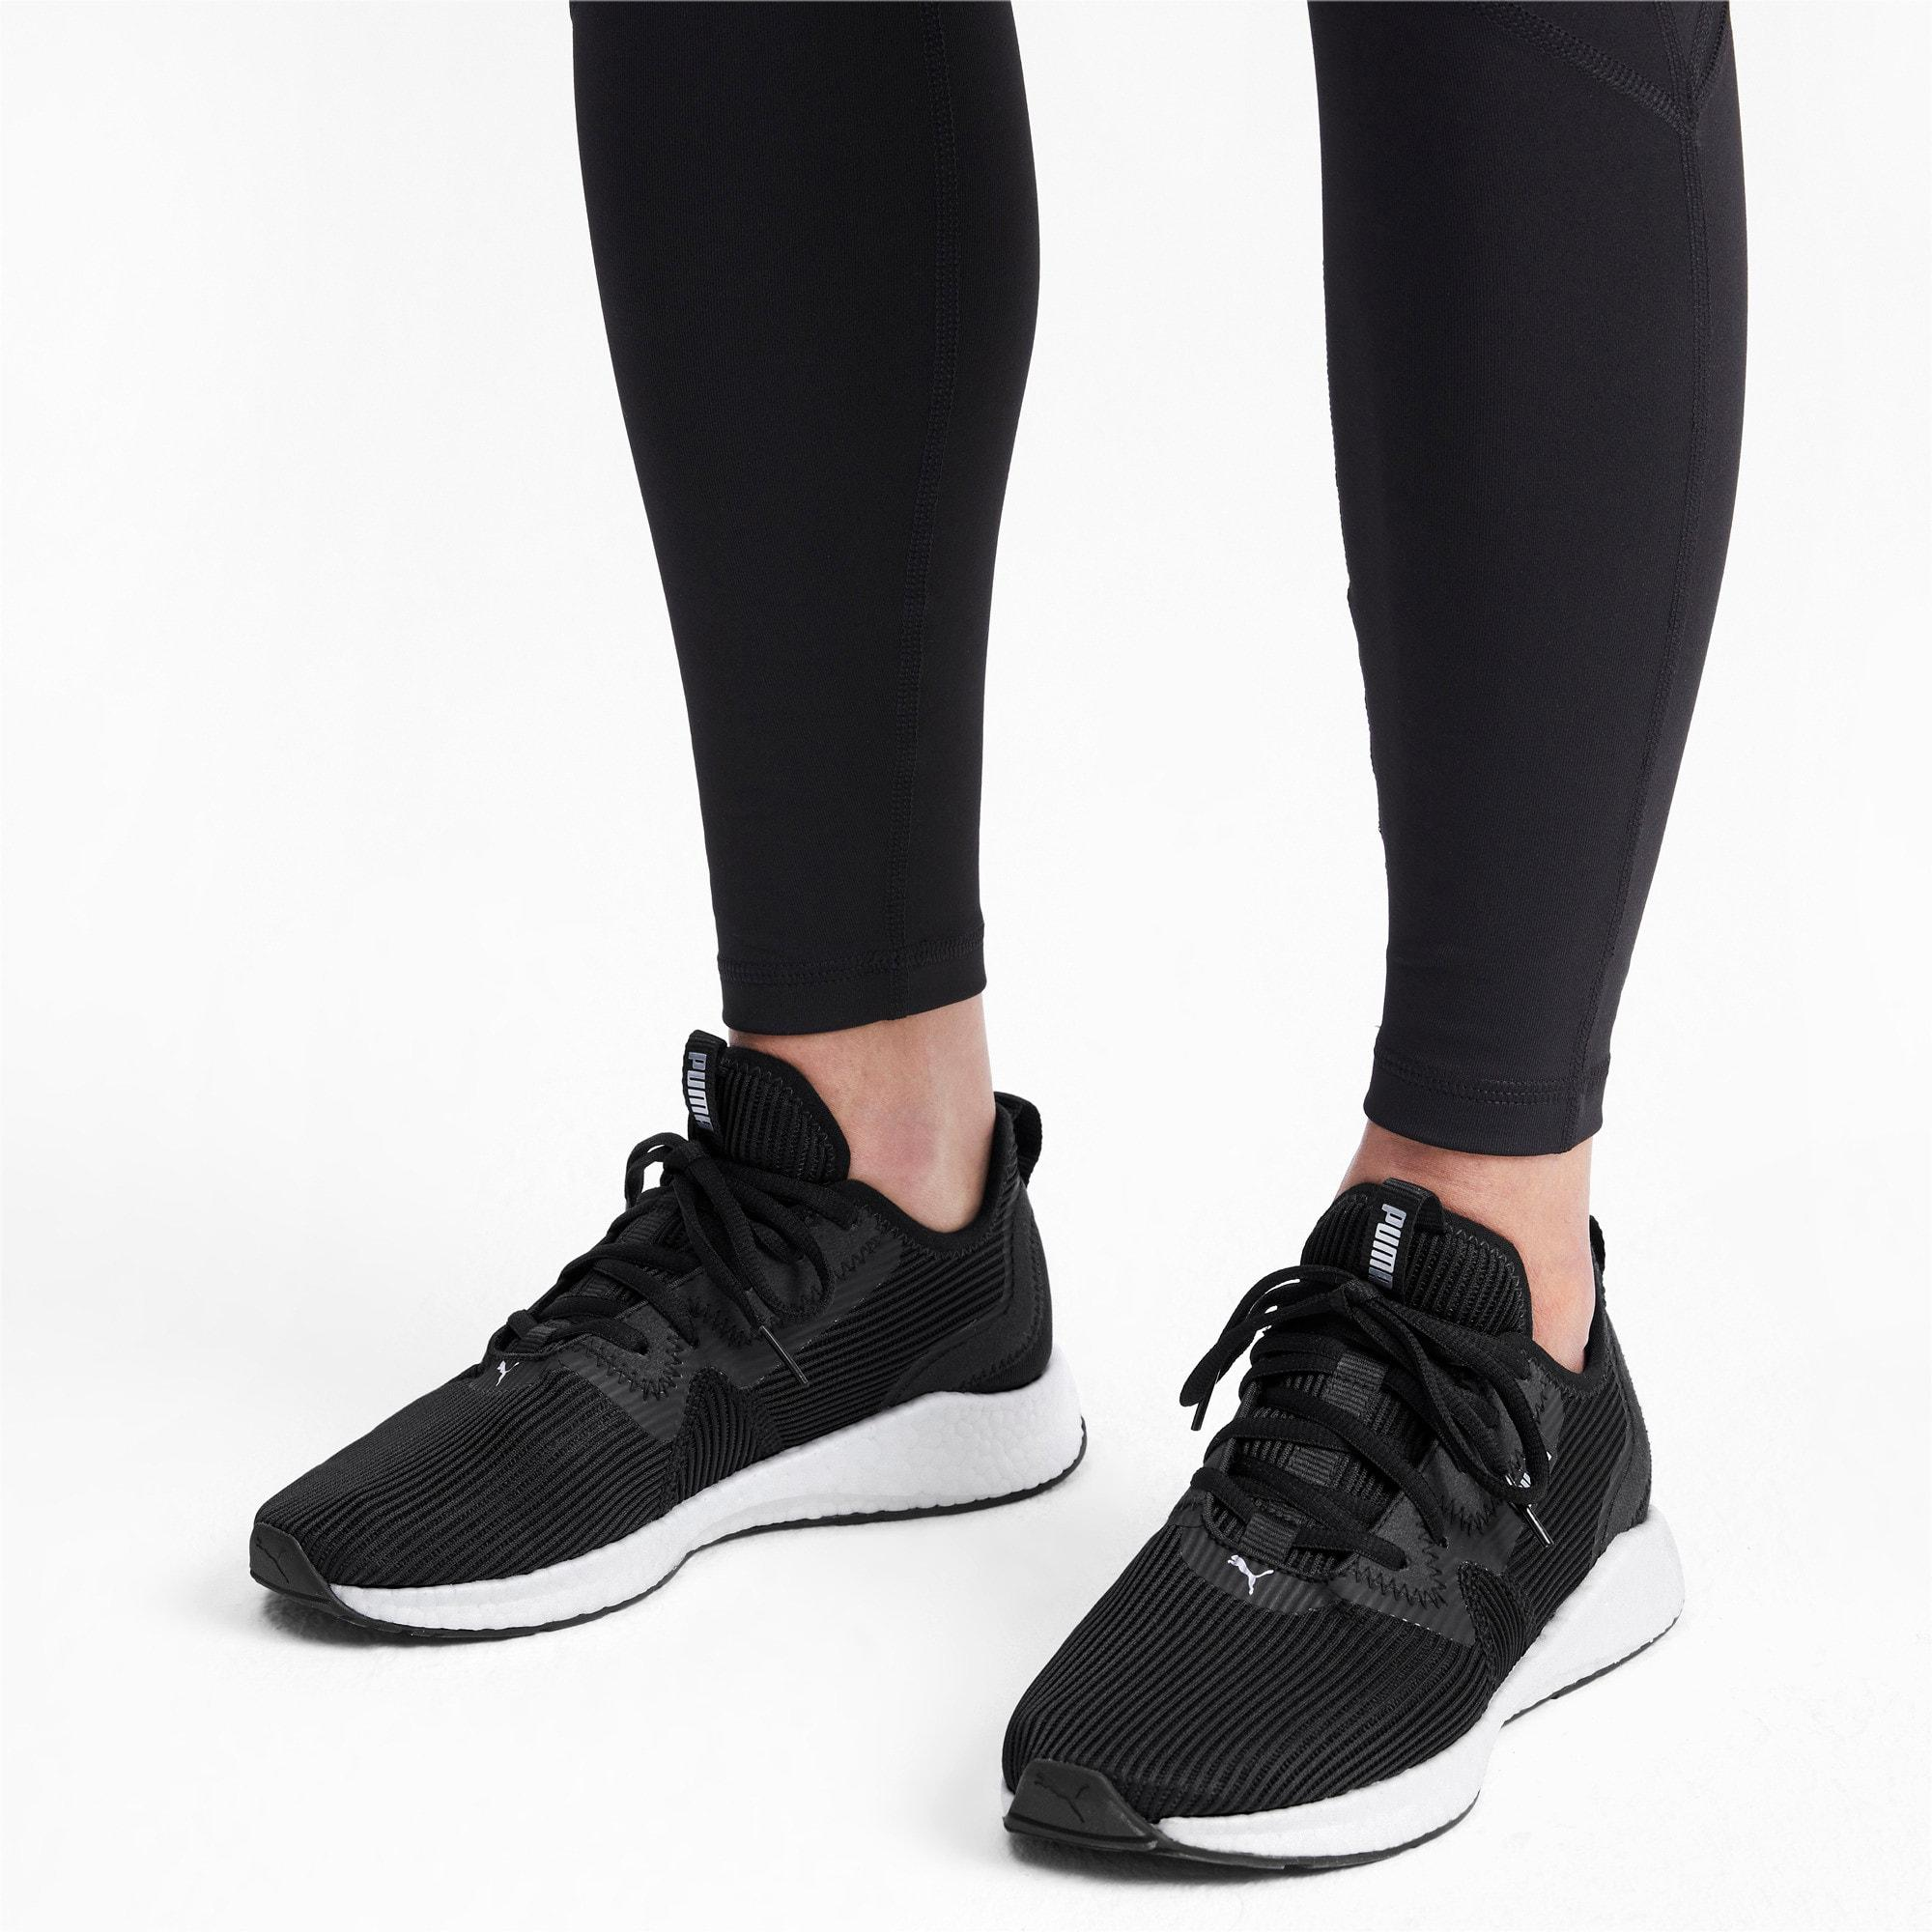 PUMA Rubber Nrgy Star Femme Women's Running Shoes in Black-Silver ...